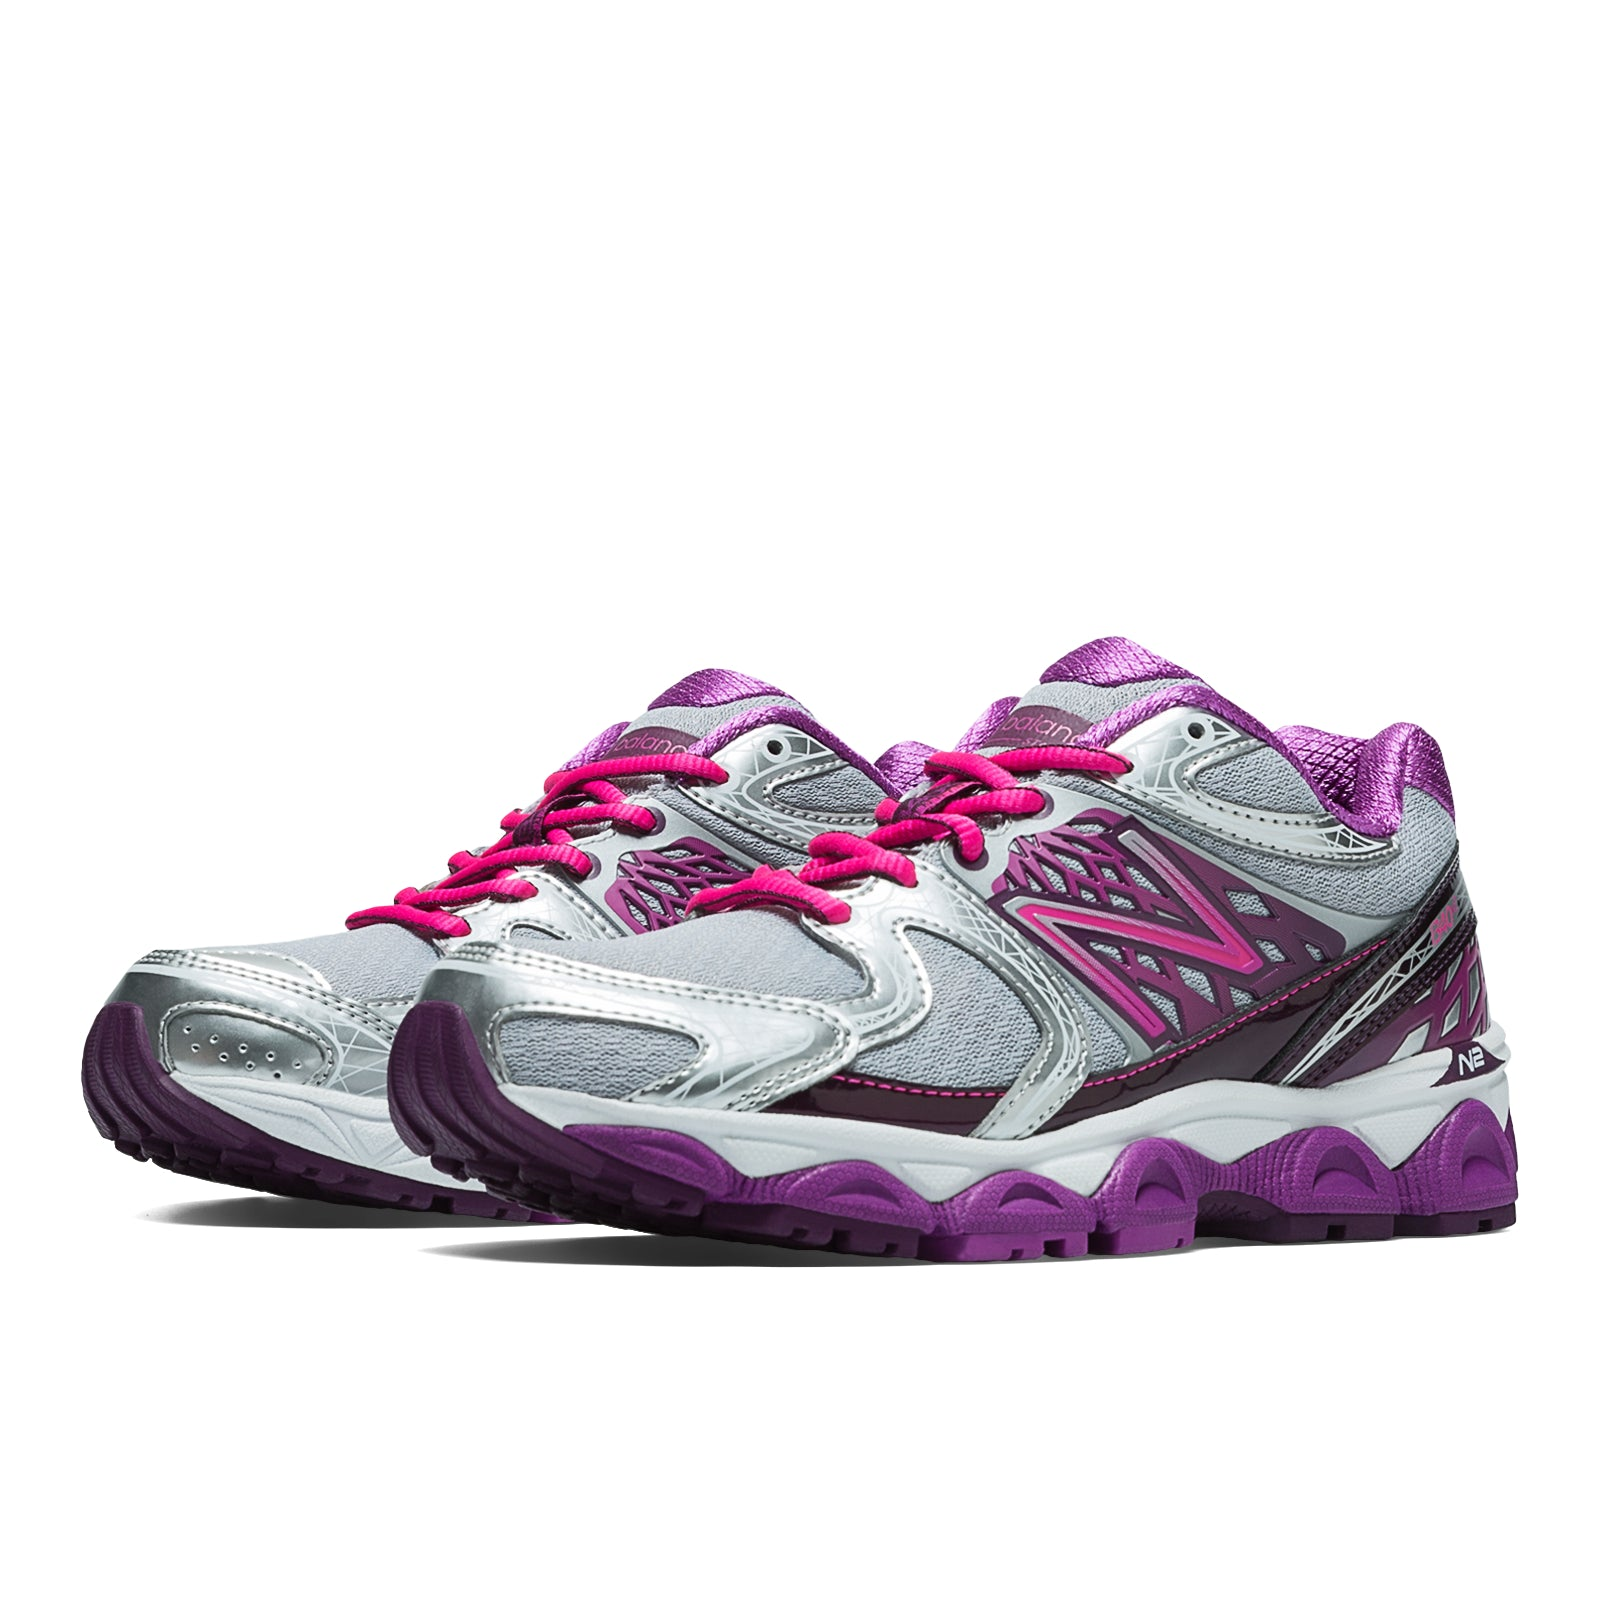 'New Balance' W1340SP2 - 1340v2 - Silver / Grey / Purple / Pink